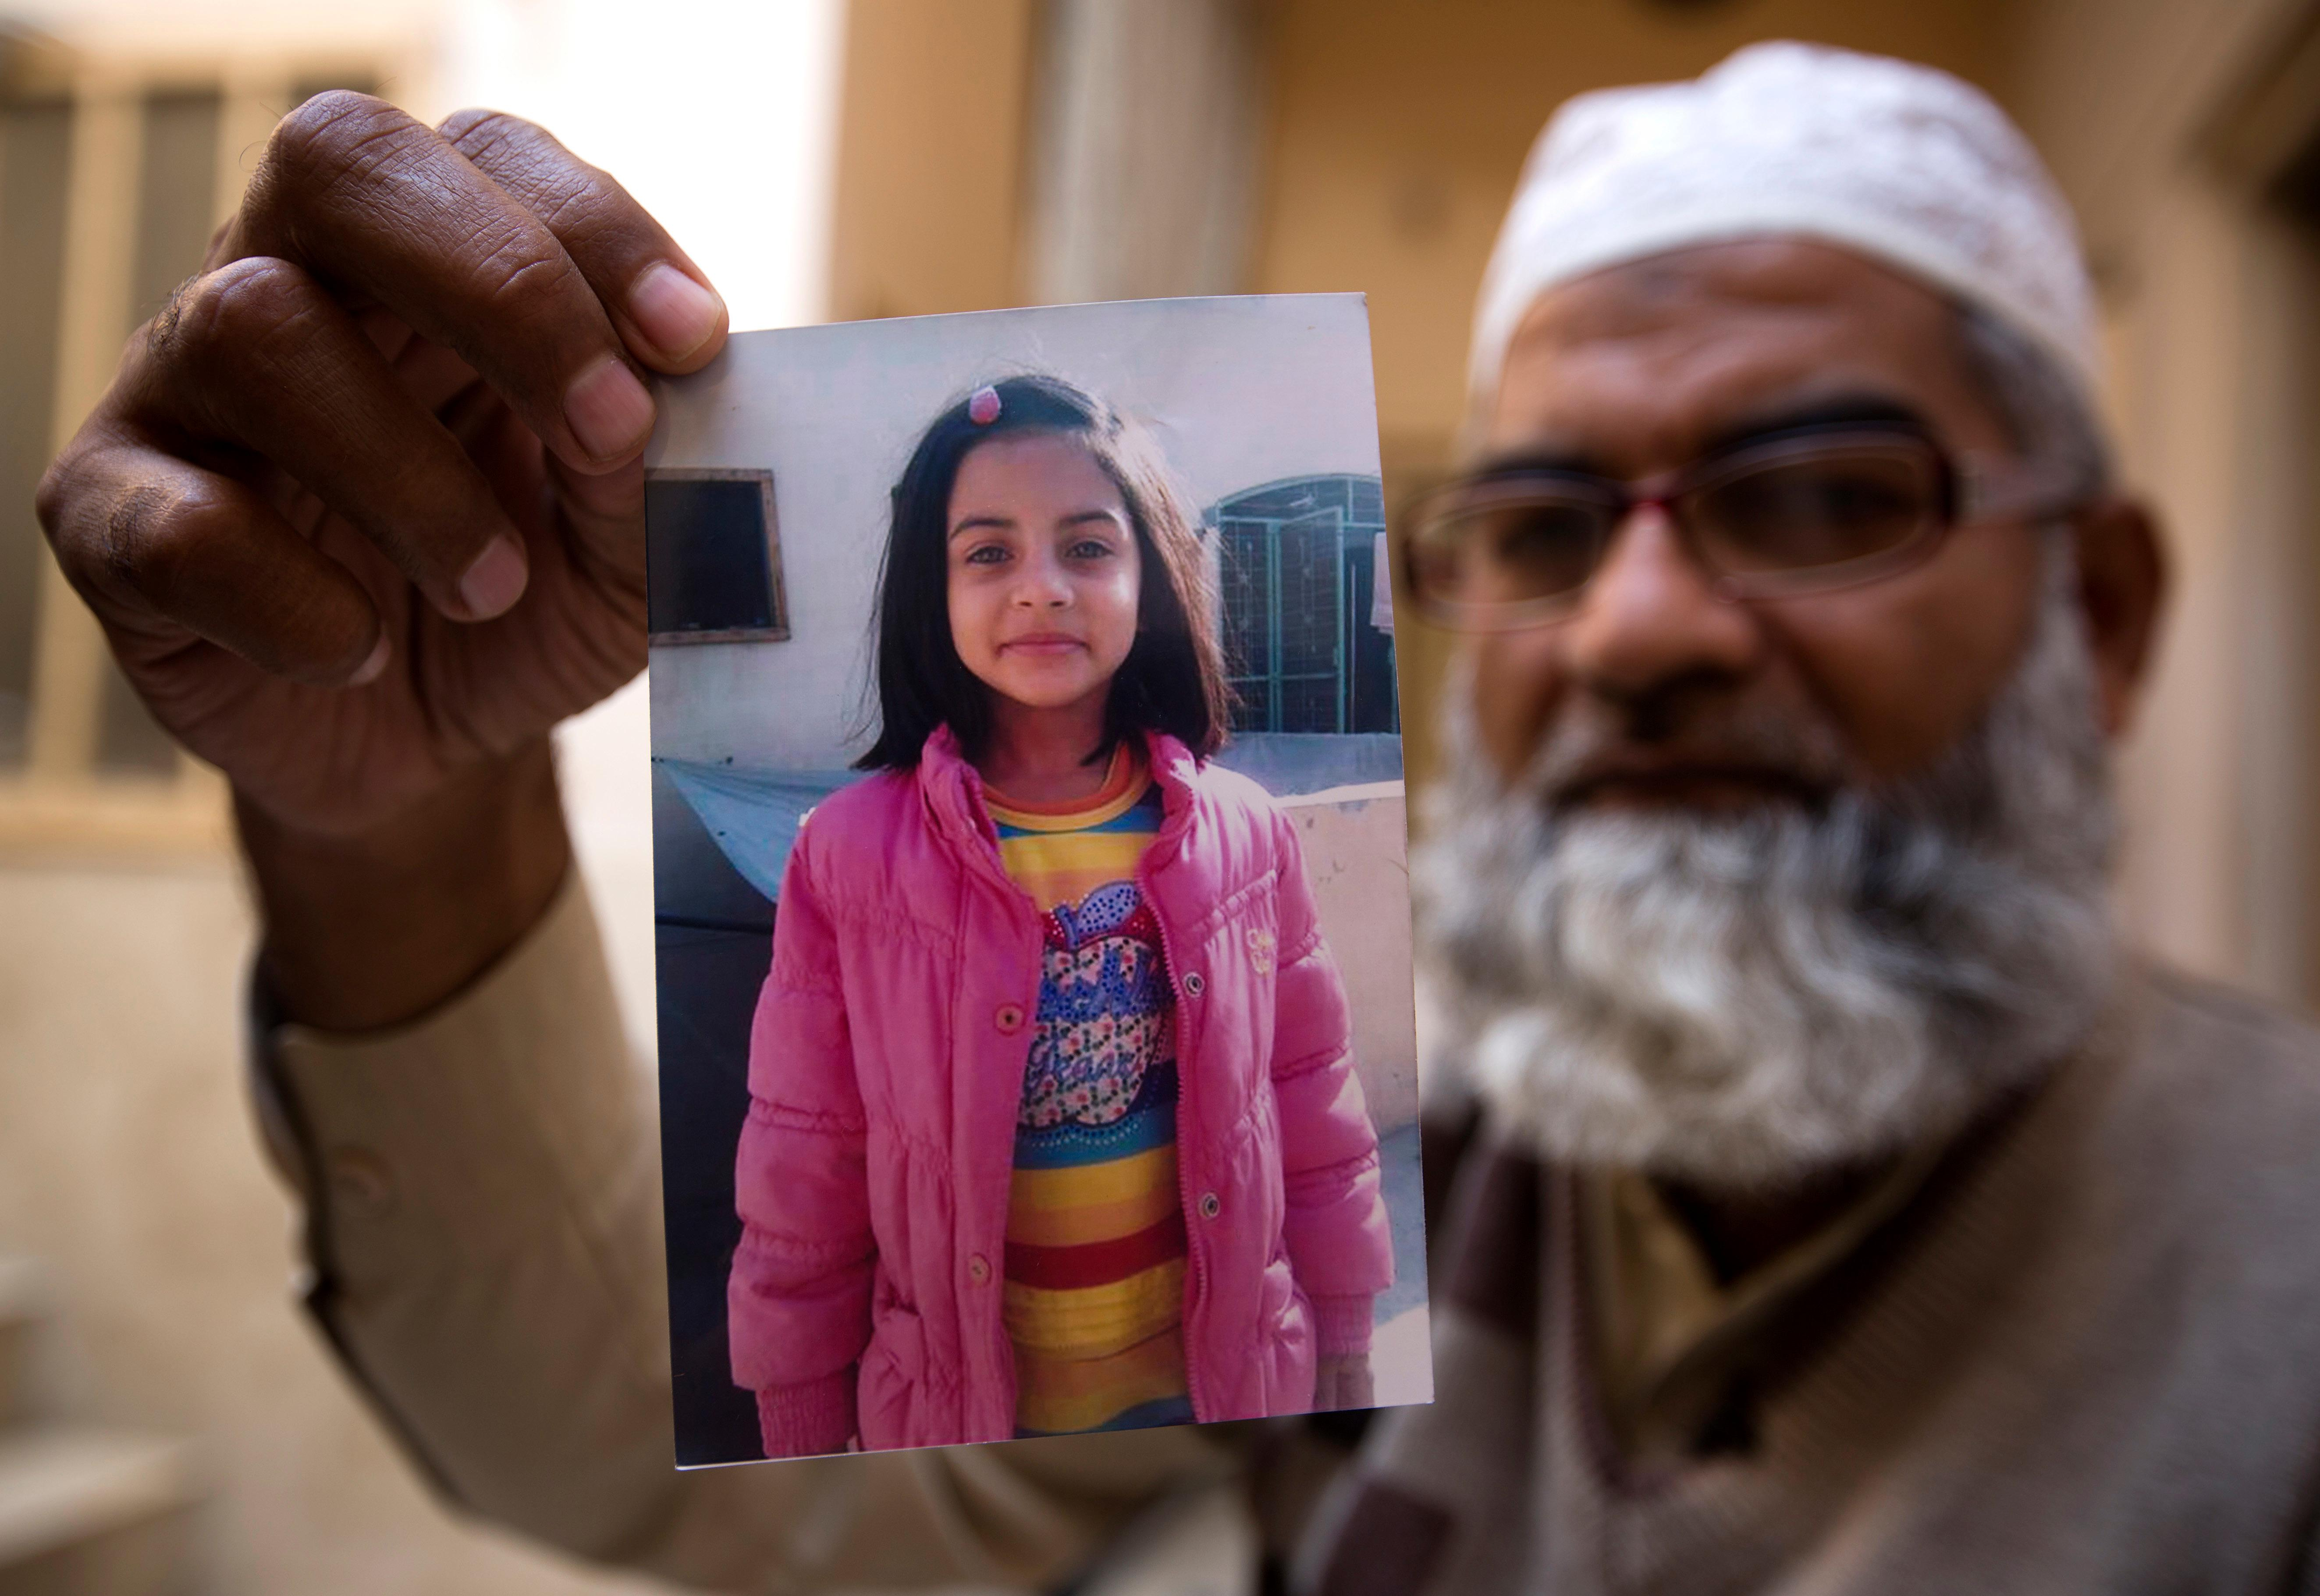 In this Thursday, Jan. 18, 2018 photo, Mohammed Amin shows a picture of his seven year-old daughter, Zainab Ansari in Kasur, Pakistan. (AP Photo/B.K. Bangash)